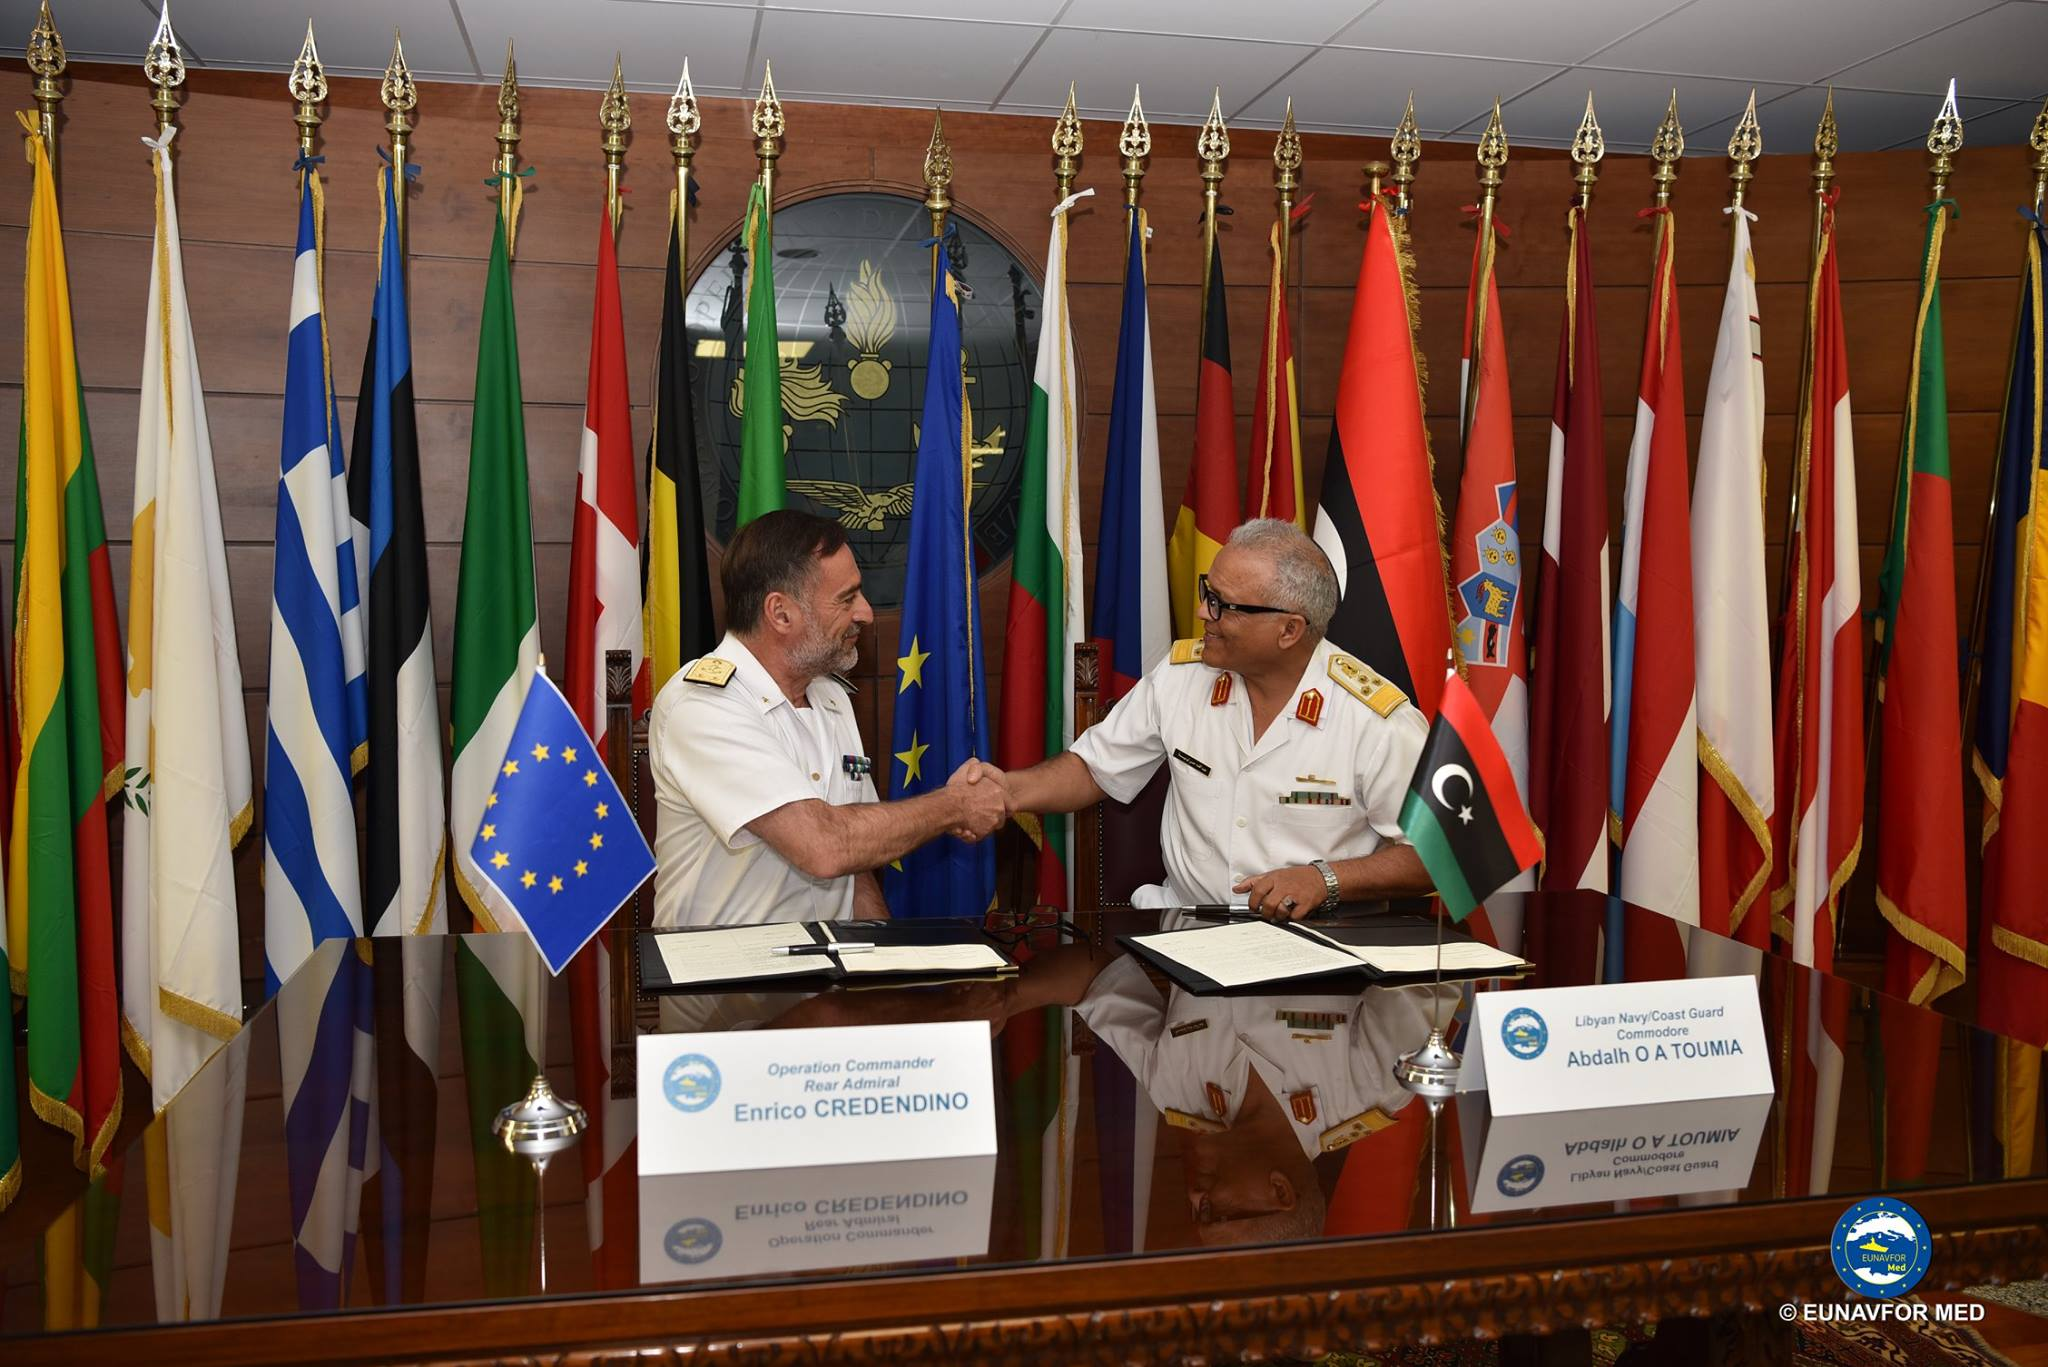 EUNAVFOR MED and Libyan Coast Guard and Navy signed their #Memorandum of Understanding on training activities 2